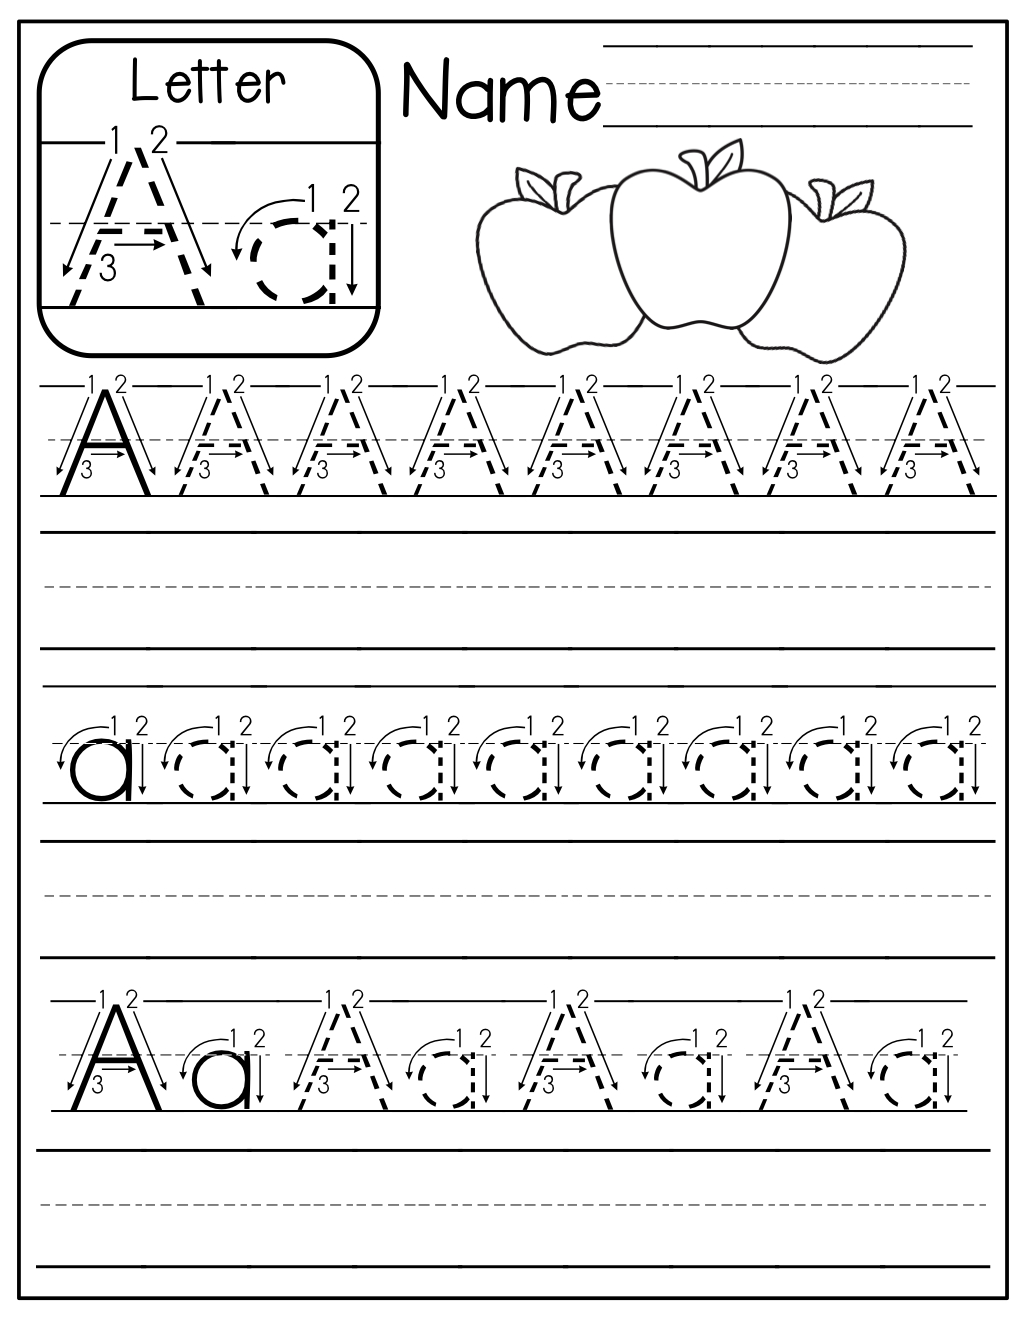 Free Tracing Letters Worksheet A Z